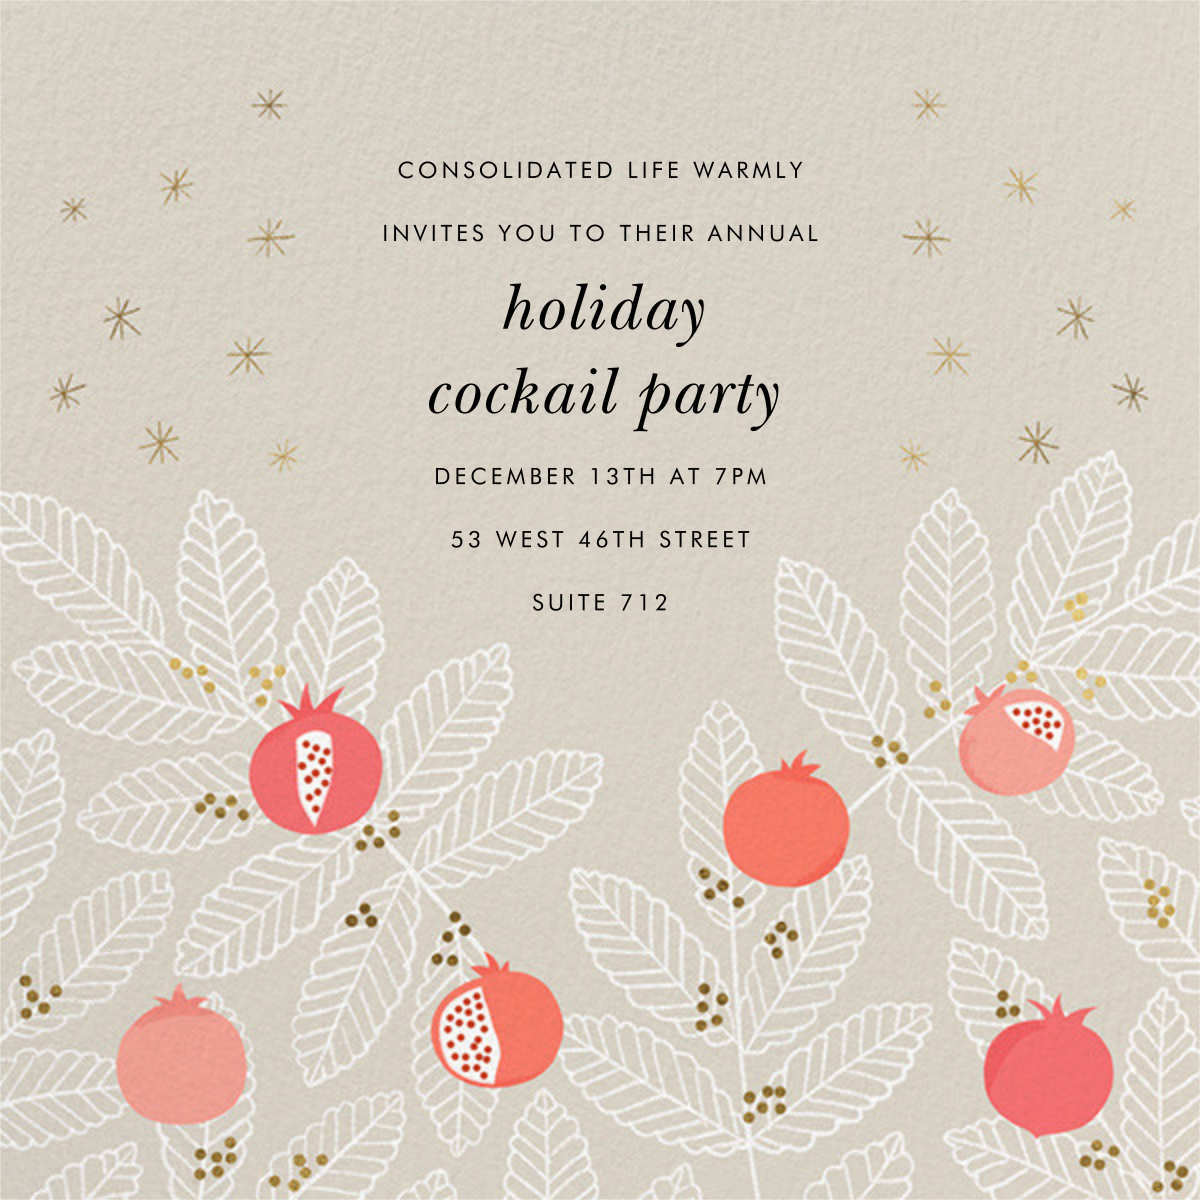 Pom Pom Club - Paperless Post - Corporate invitations